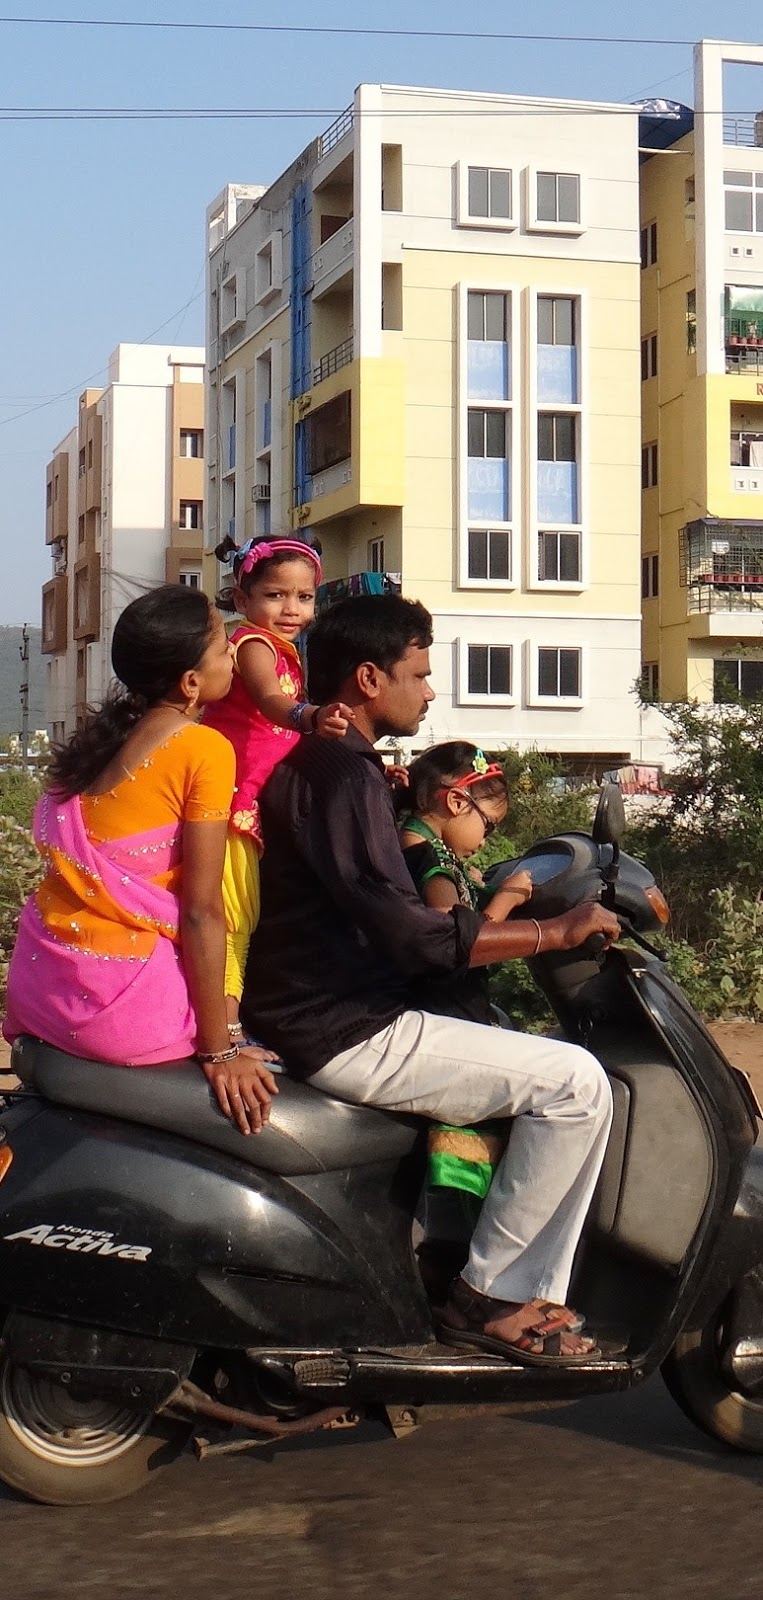 Family on a scooter.